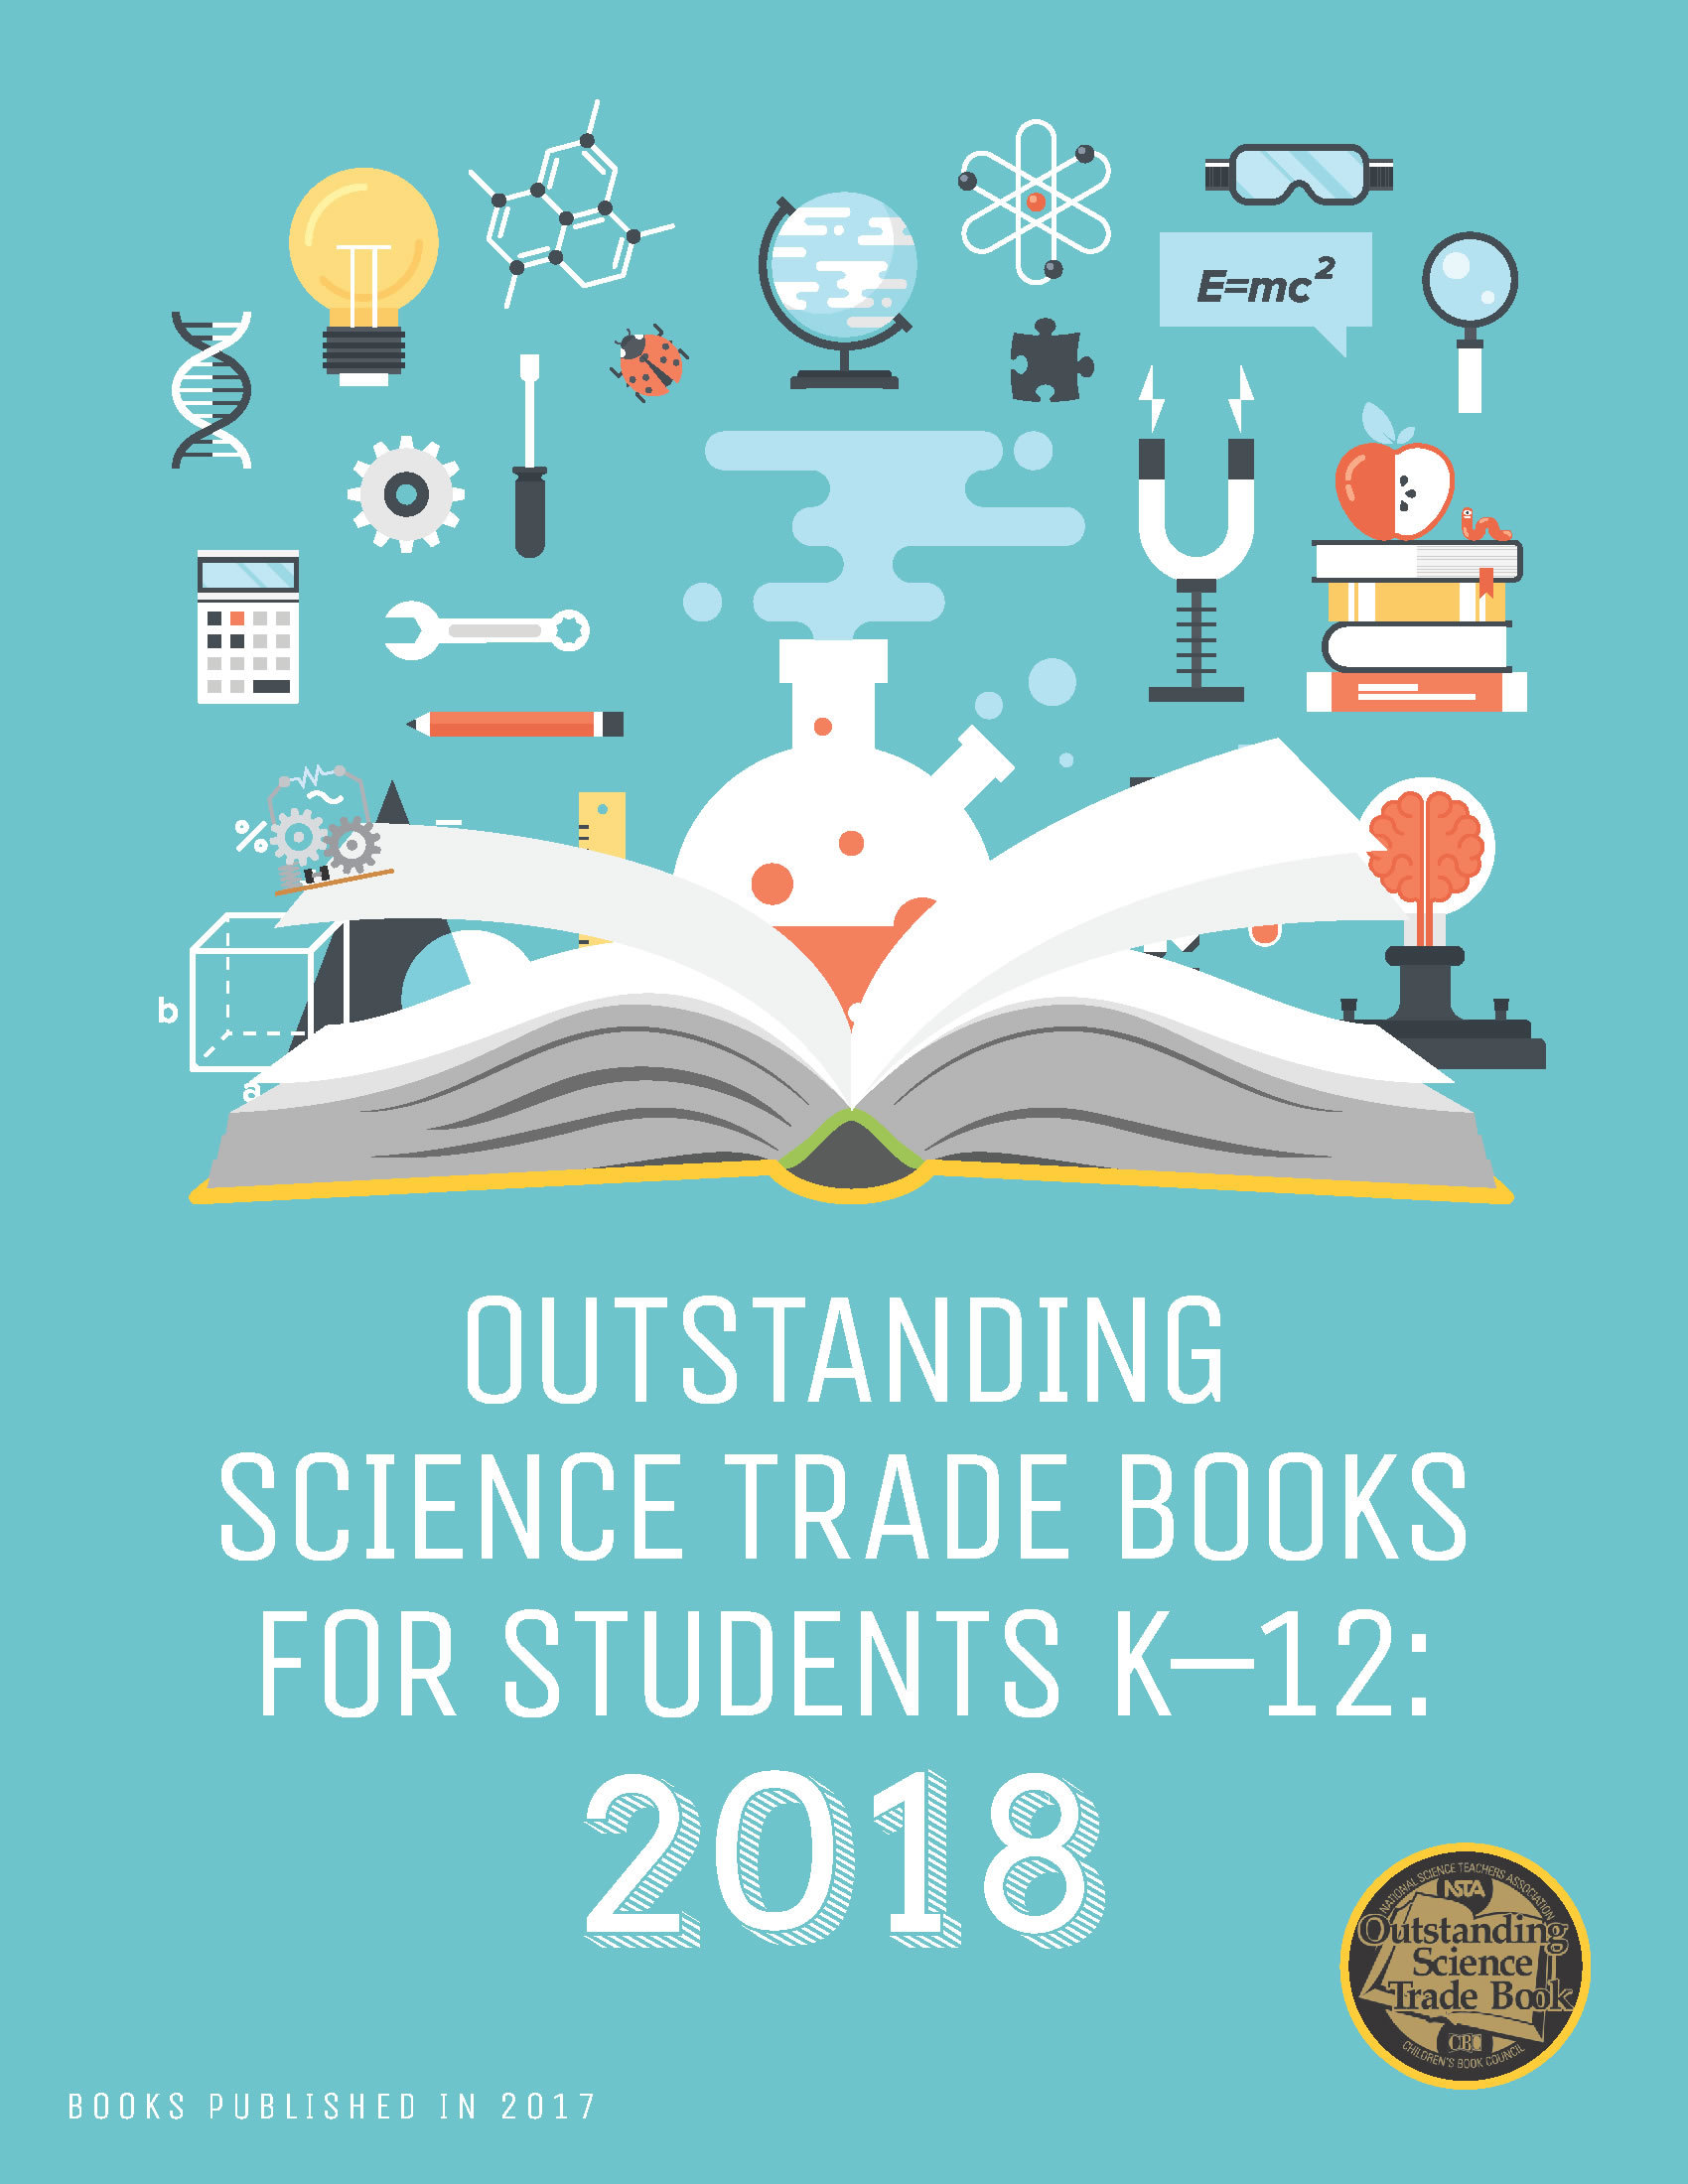 NSTA Unveils 2018 List of Top Science Trade Books for K-12 Students ...